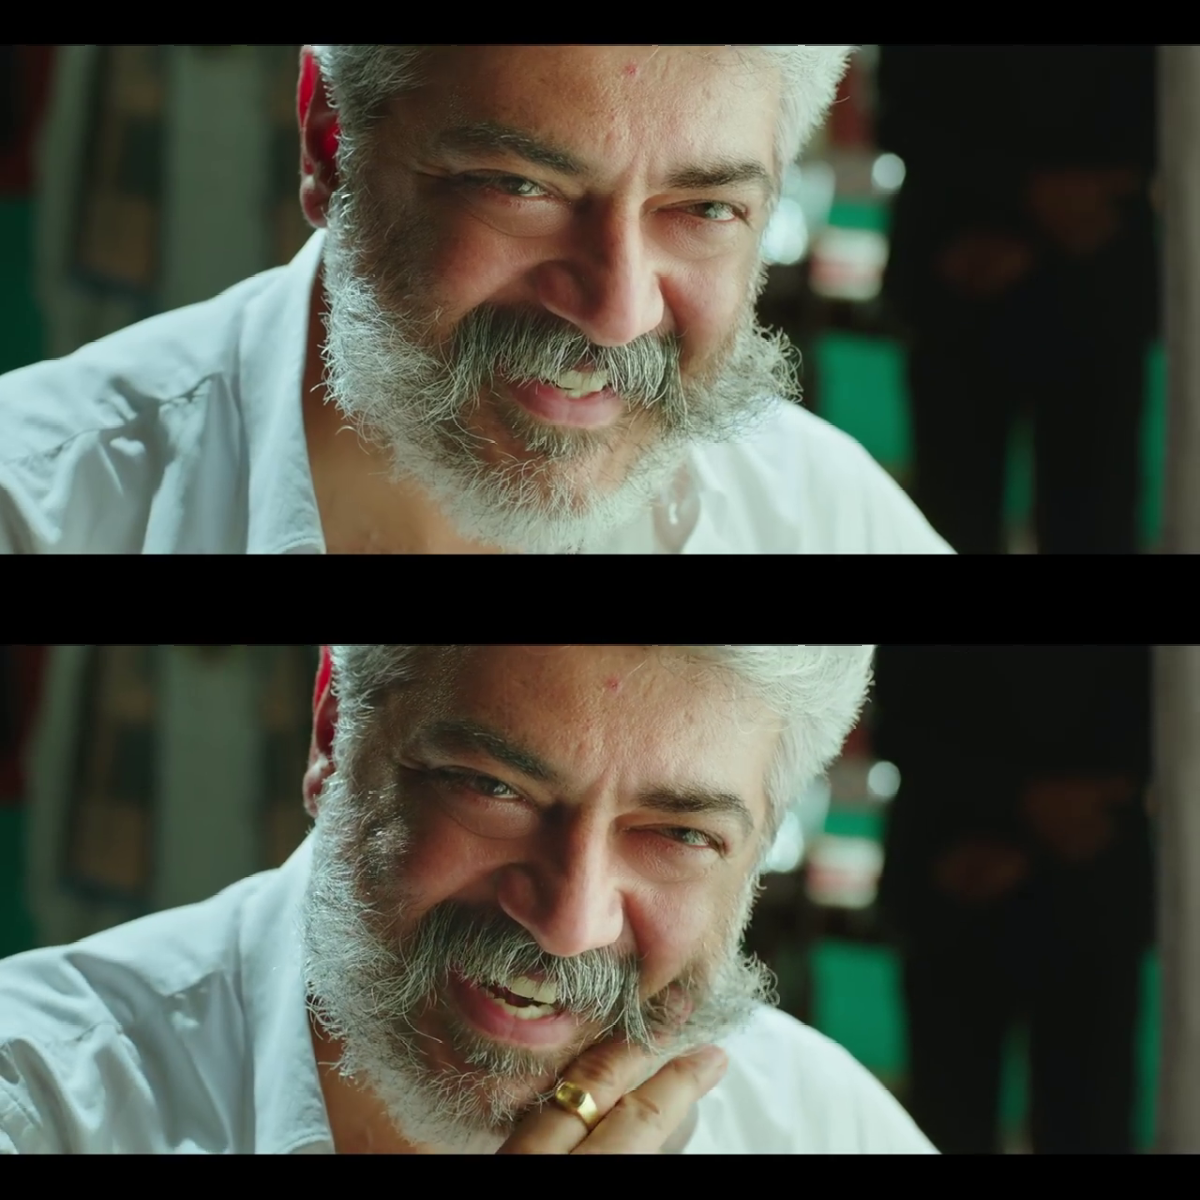 Viswasam hindi movie meme template